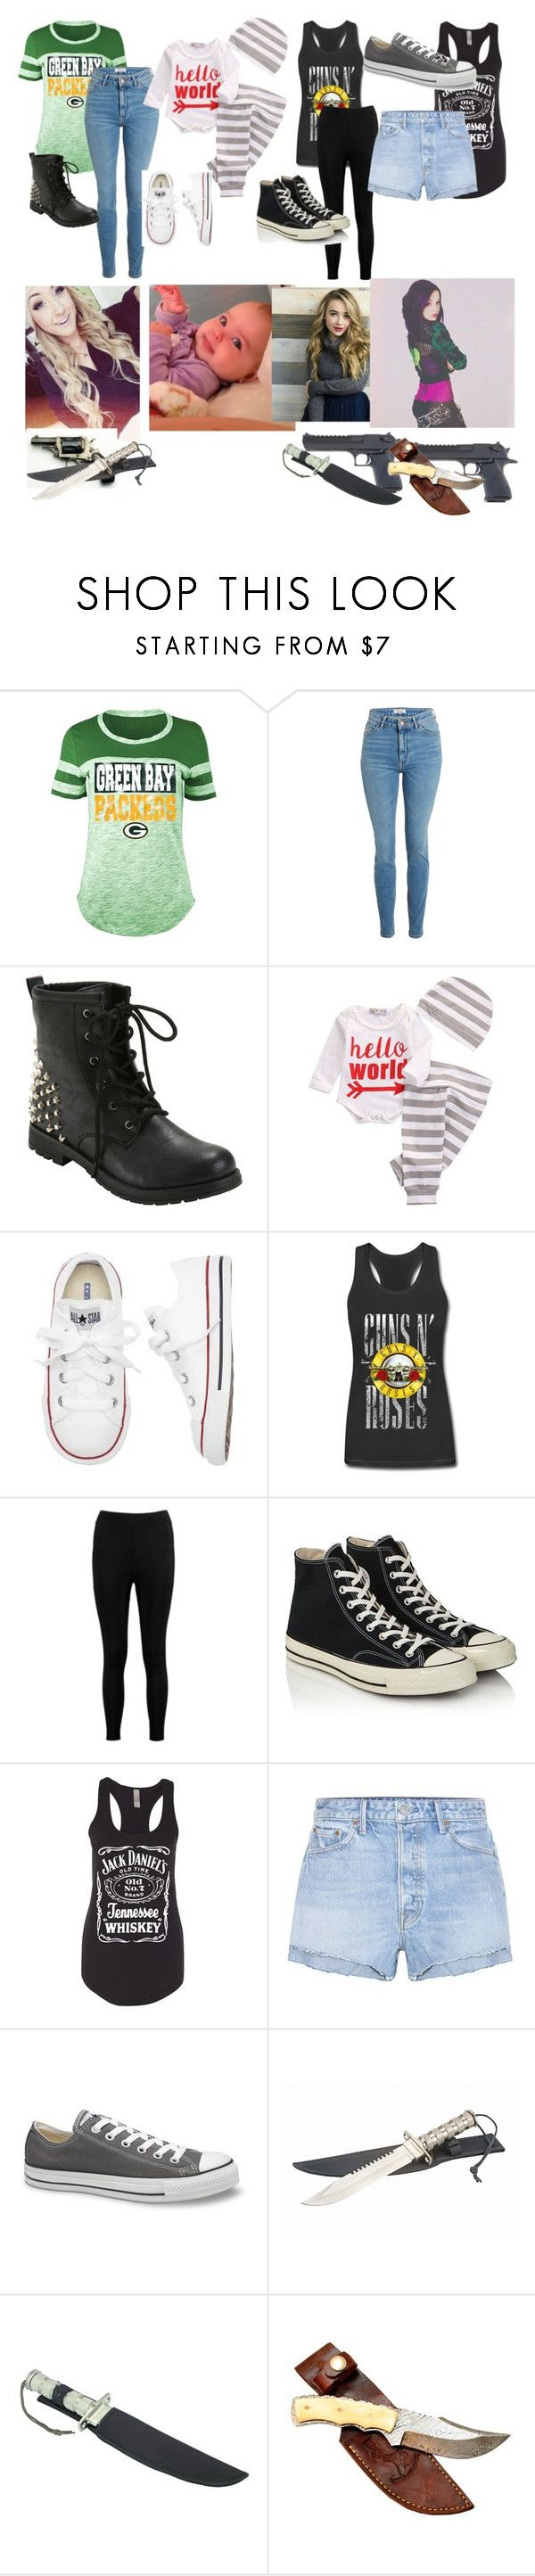 """""""My Characters Outfits fir the prison fall"""" by riddle-me-bliss ❤ liked on Polyvore featuring 5th & Ocean, Hot Topic, Gap, Boohoo, Converse and GRLFRND"""